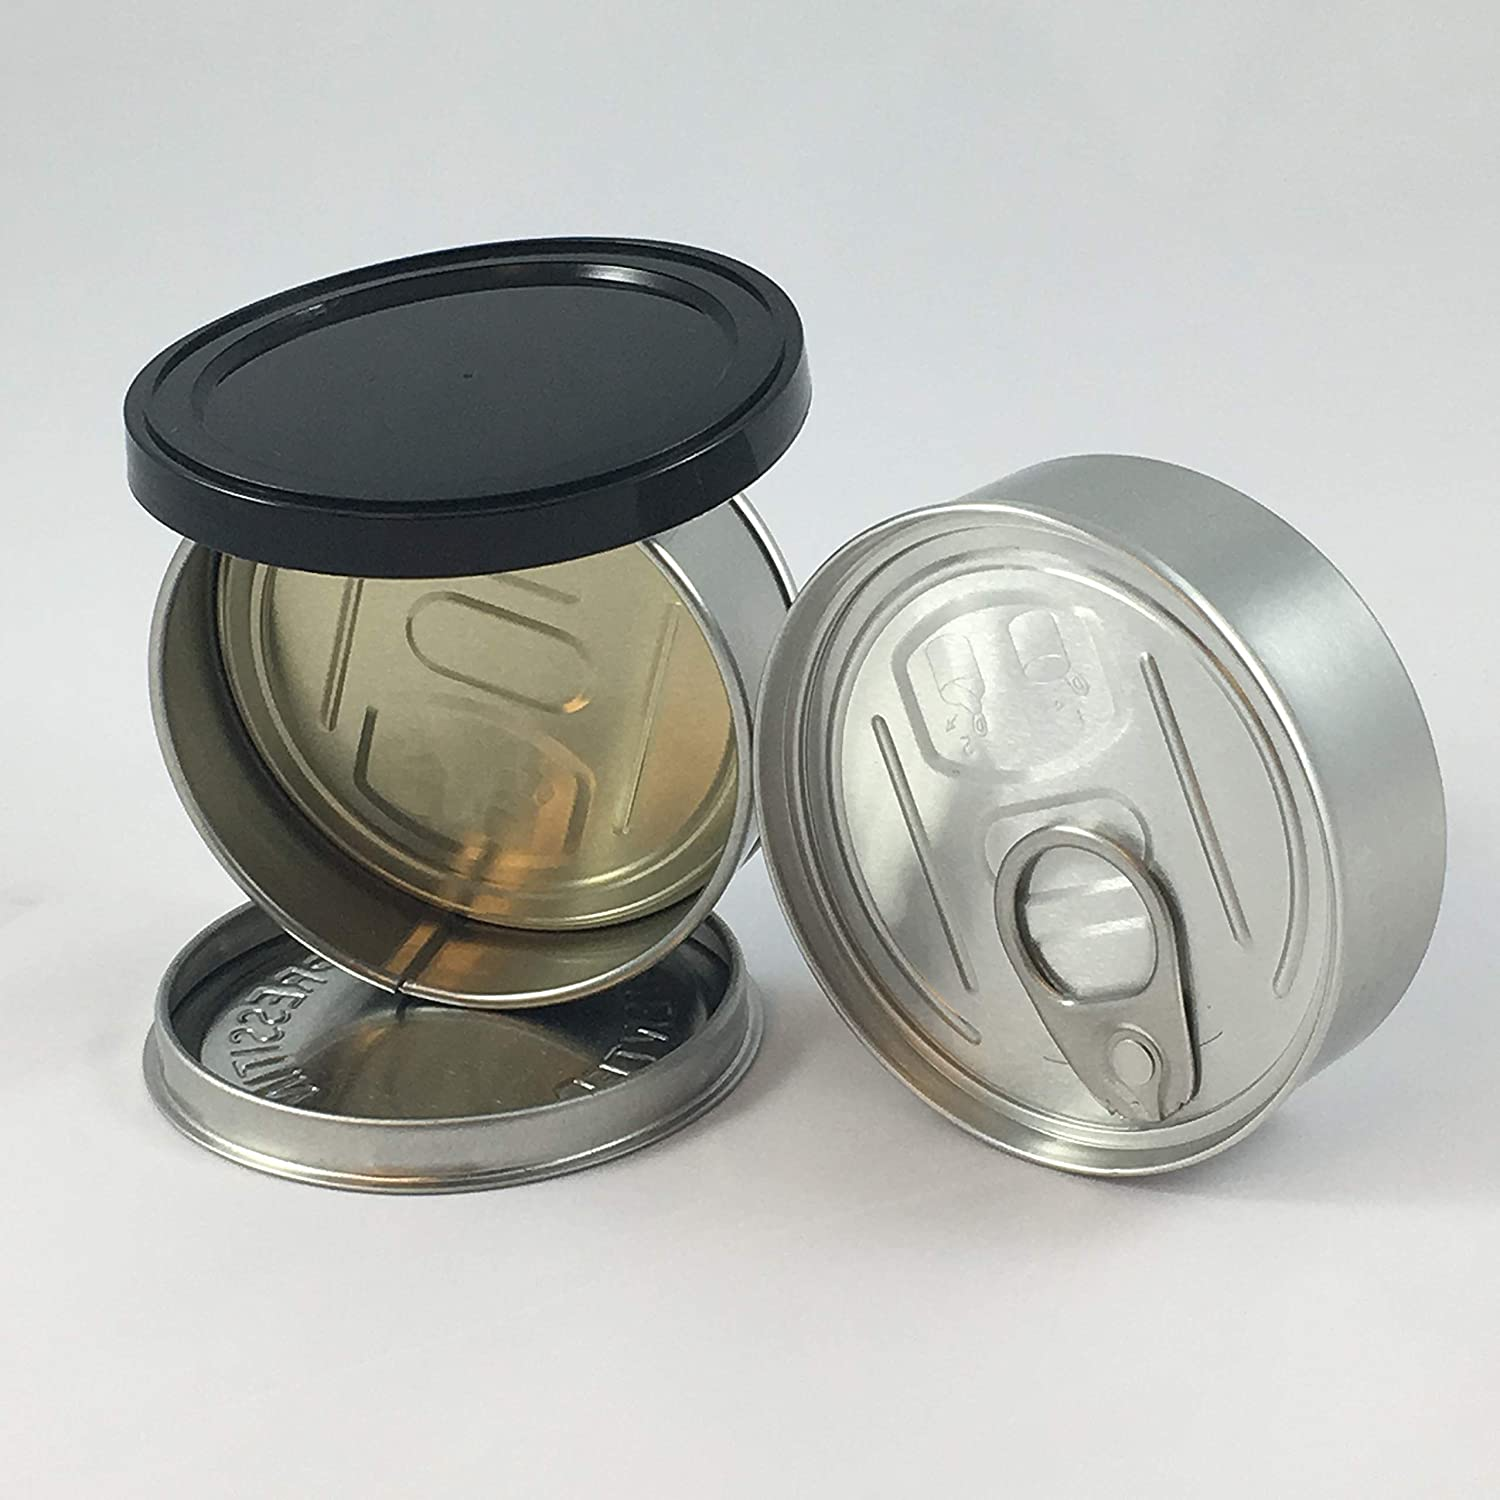 PRESSITIN PULL RING TUNA TIN CAN 3.5g